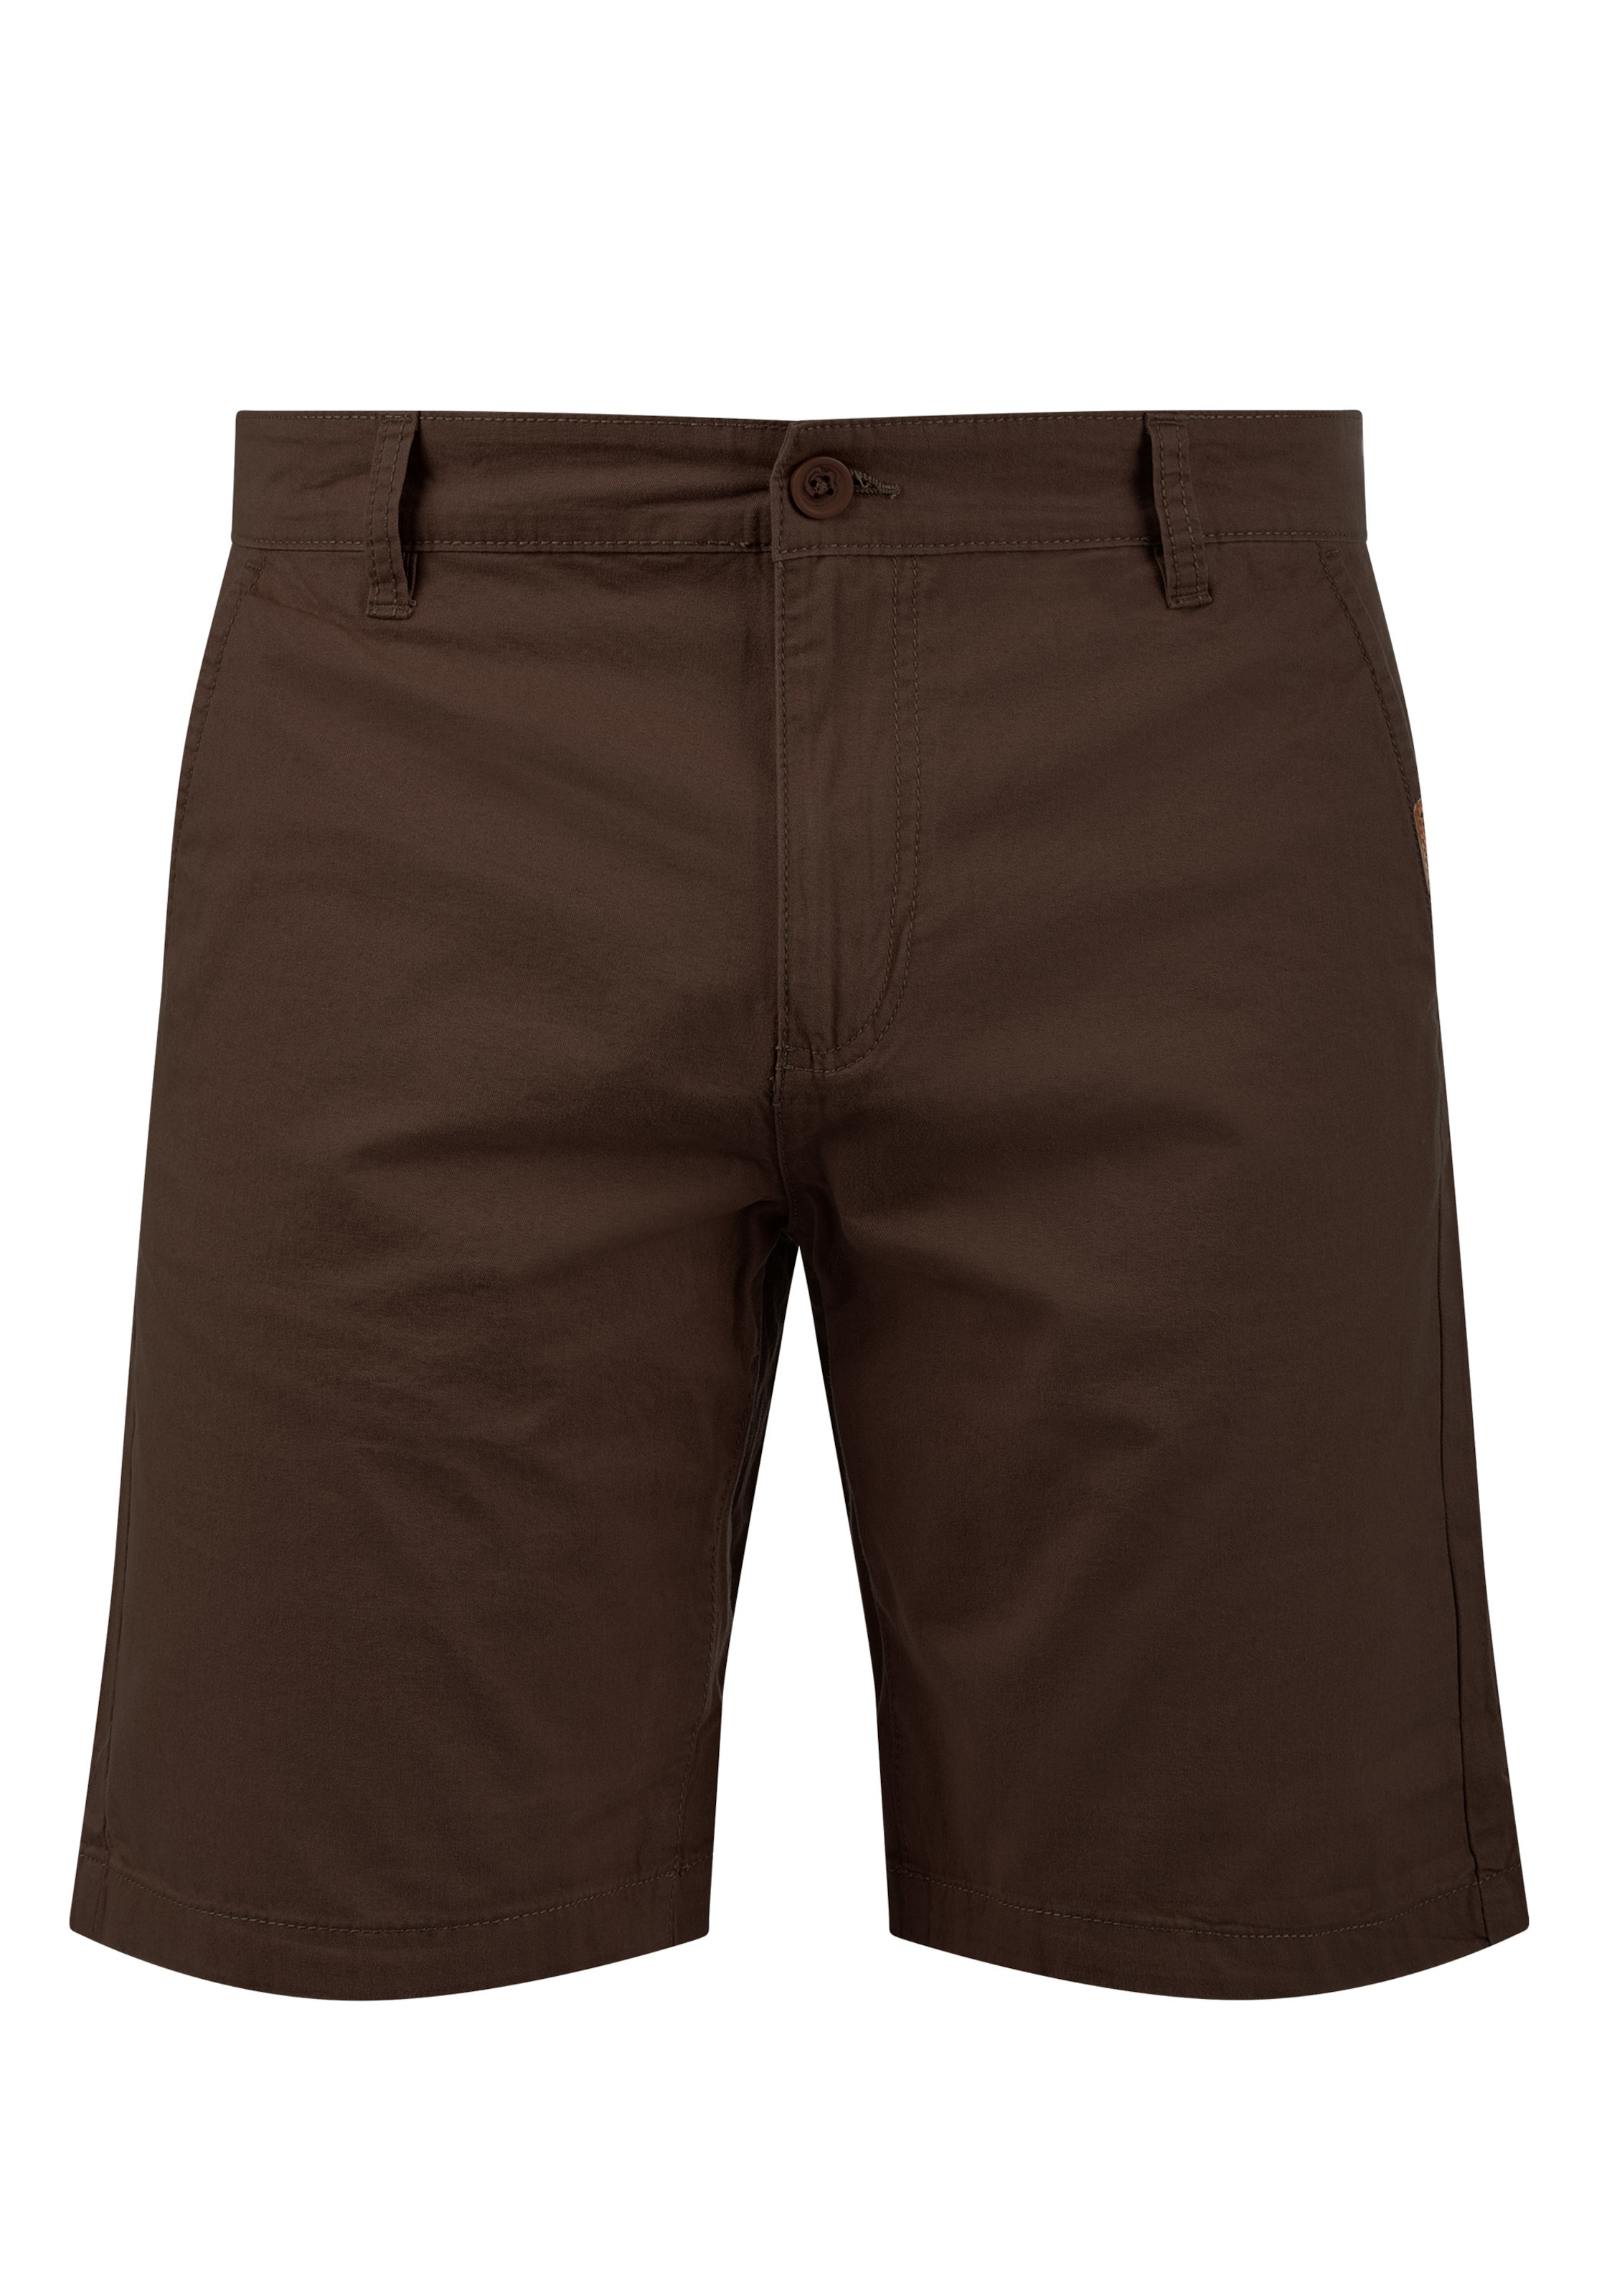 solid 'thement' In solid Braun Chinoshorts Chinoshorts 'thement' 8wPnOkN0X